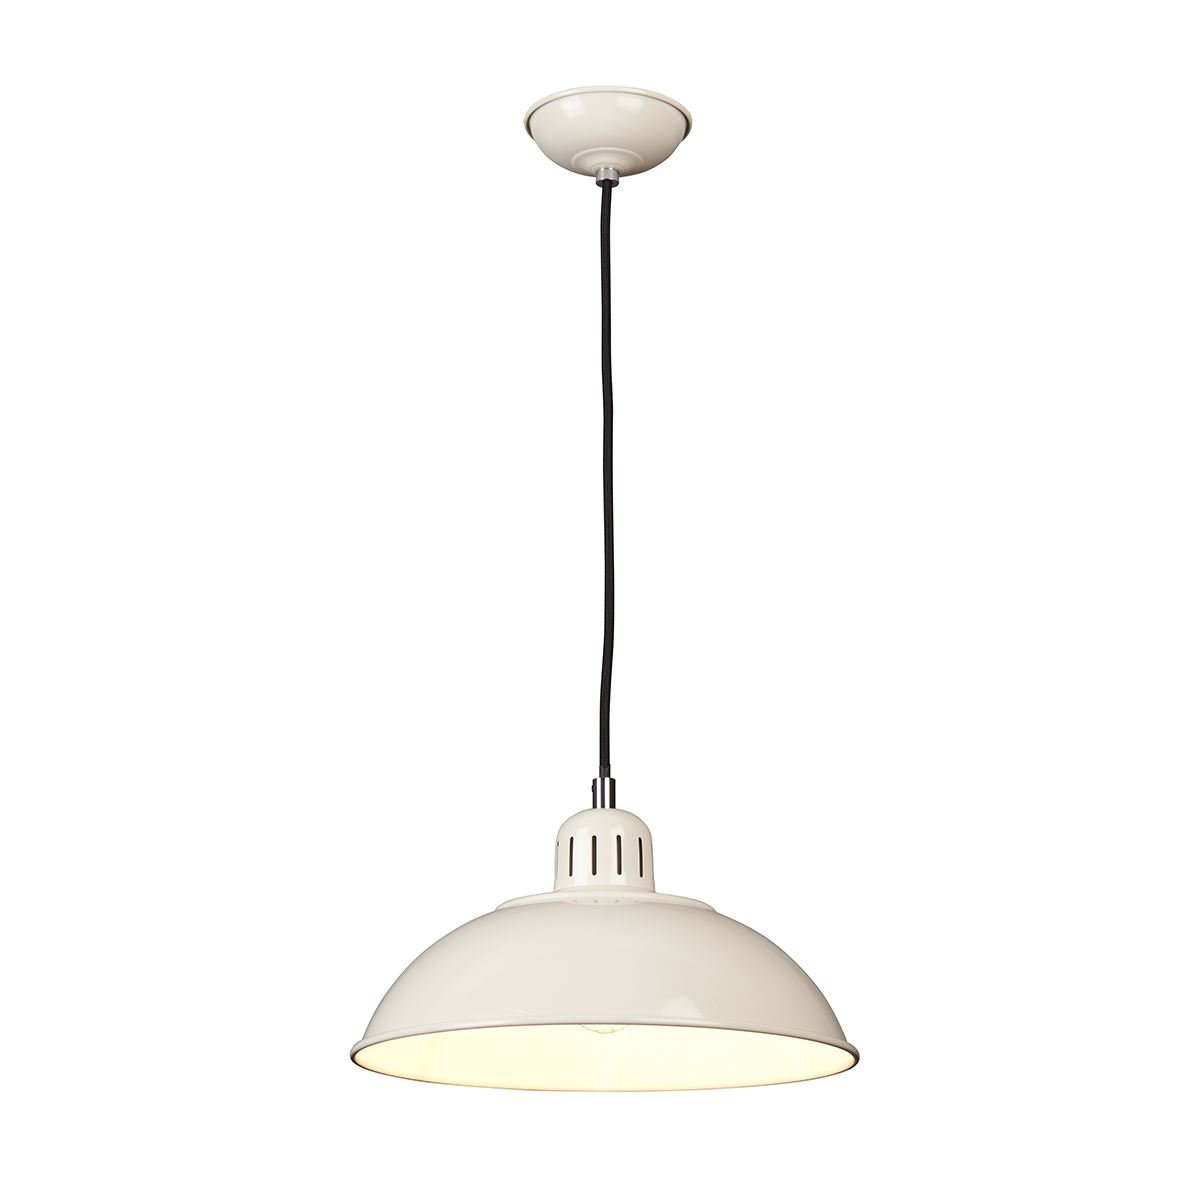 Ceiling Pendant Light In Cream